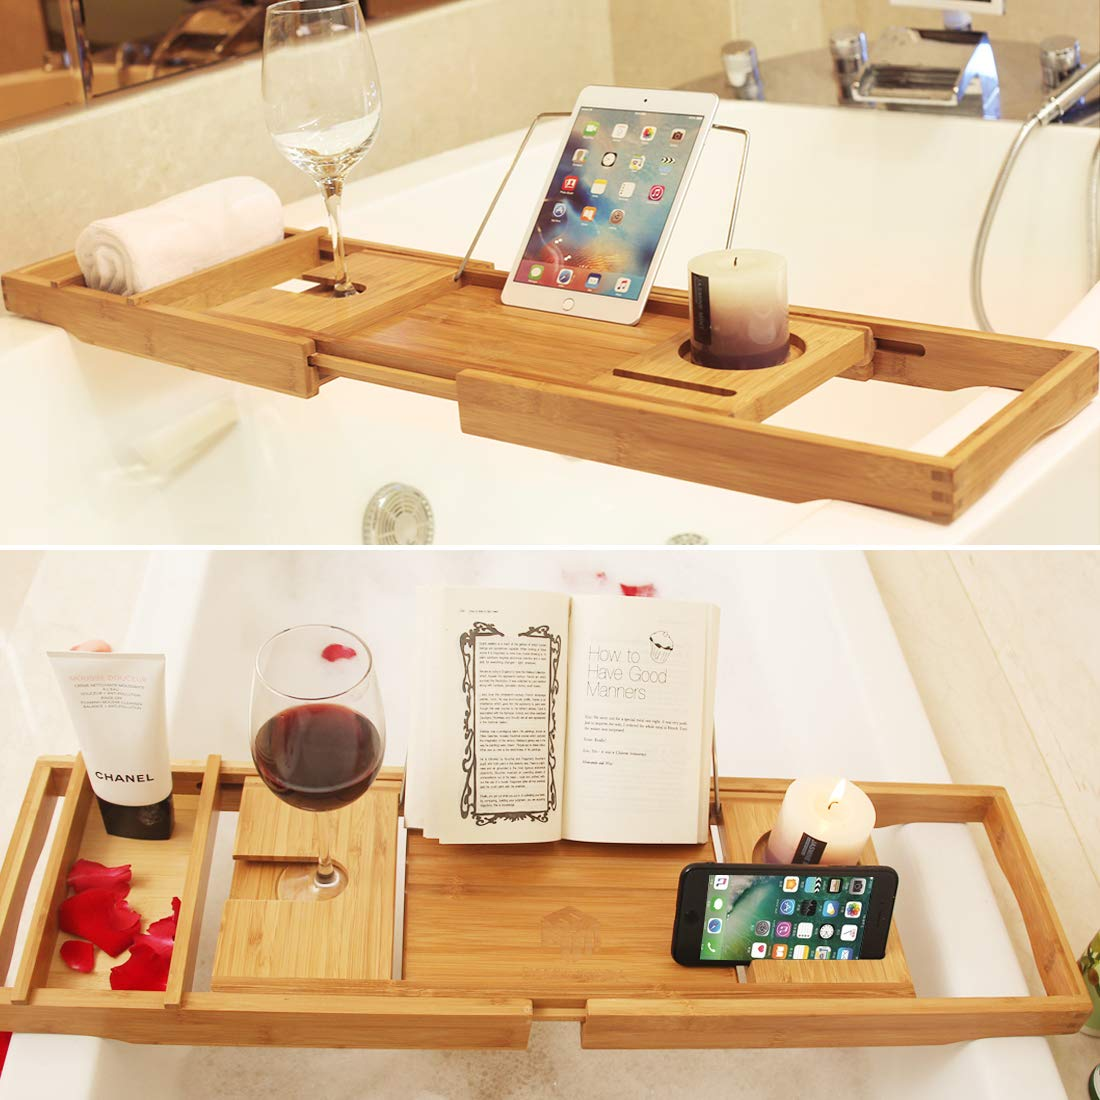 BAMBUROBA Bathtub Caddy Tray Bamboo Bathroom Organizer